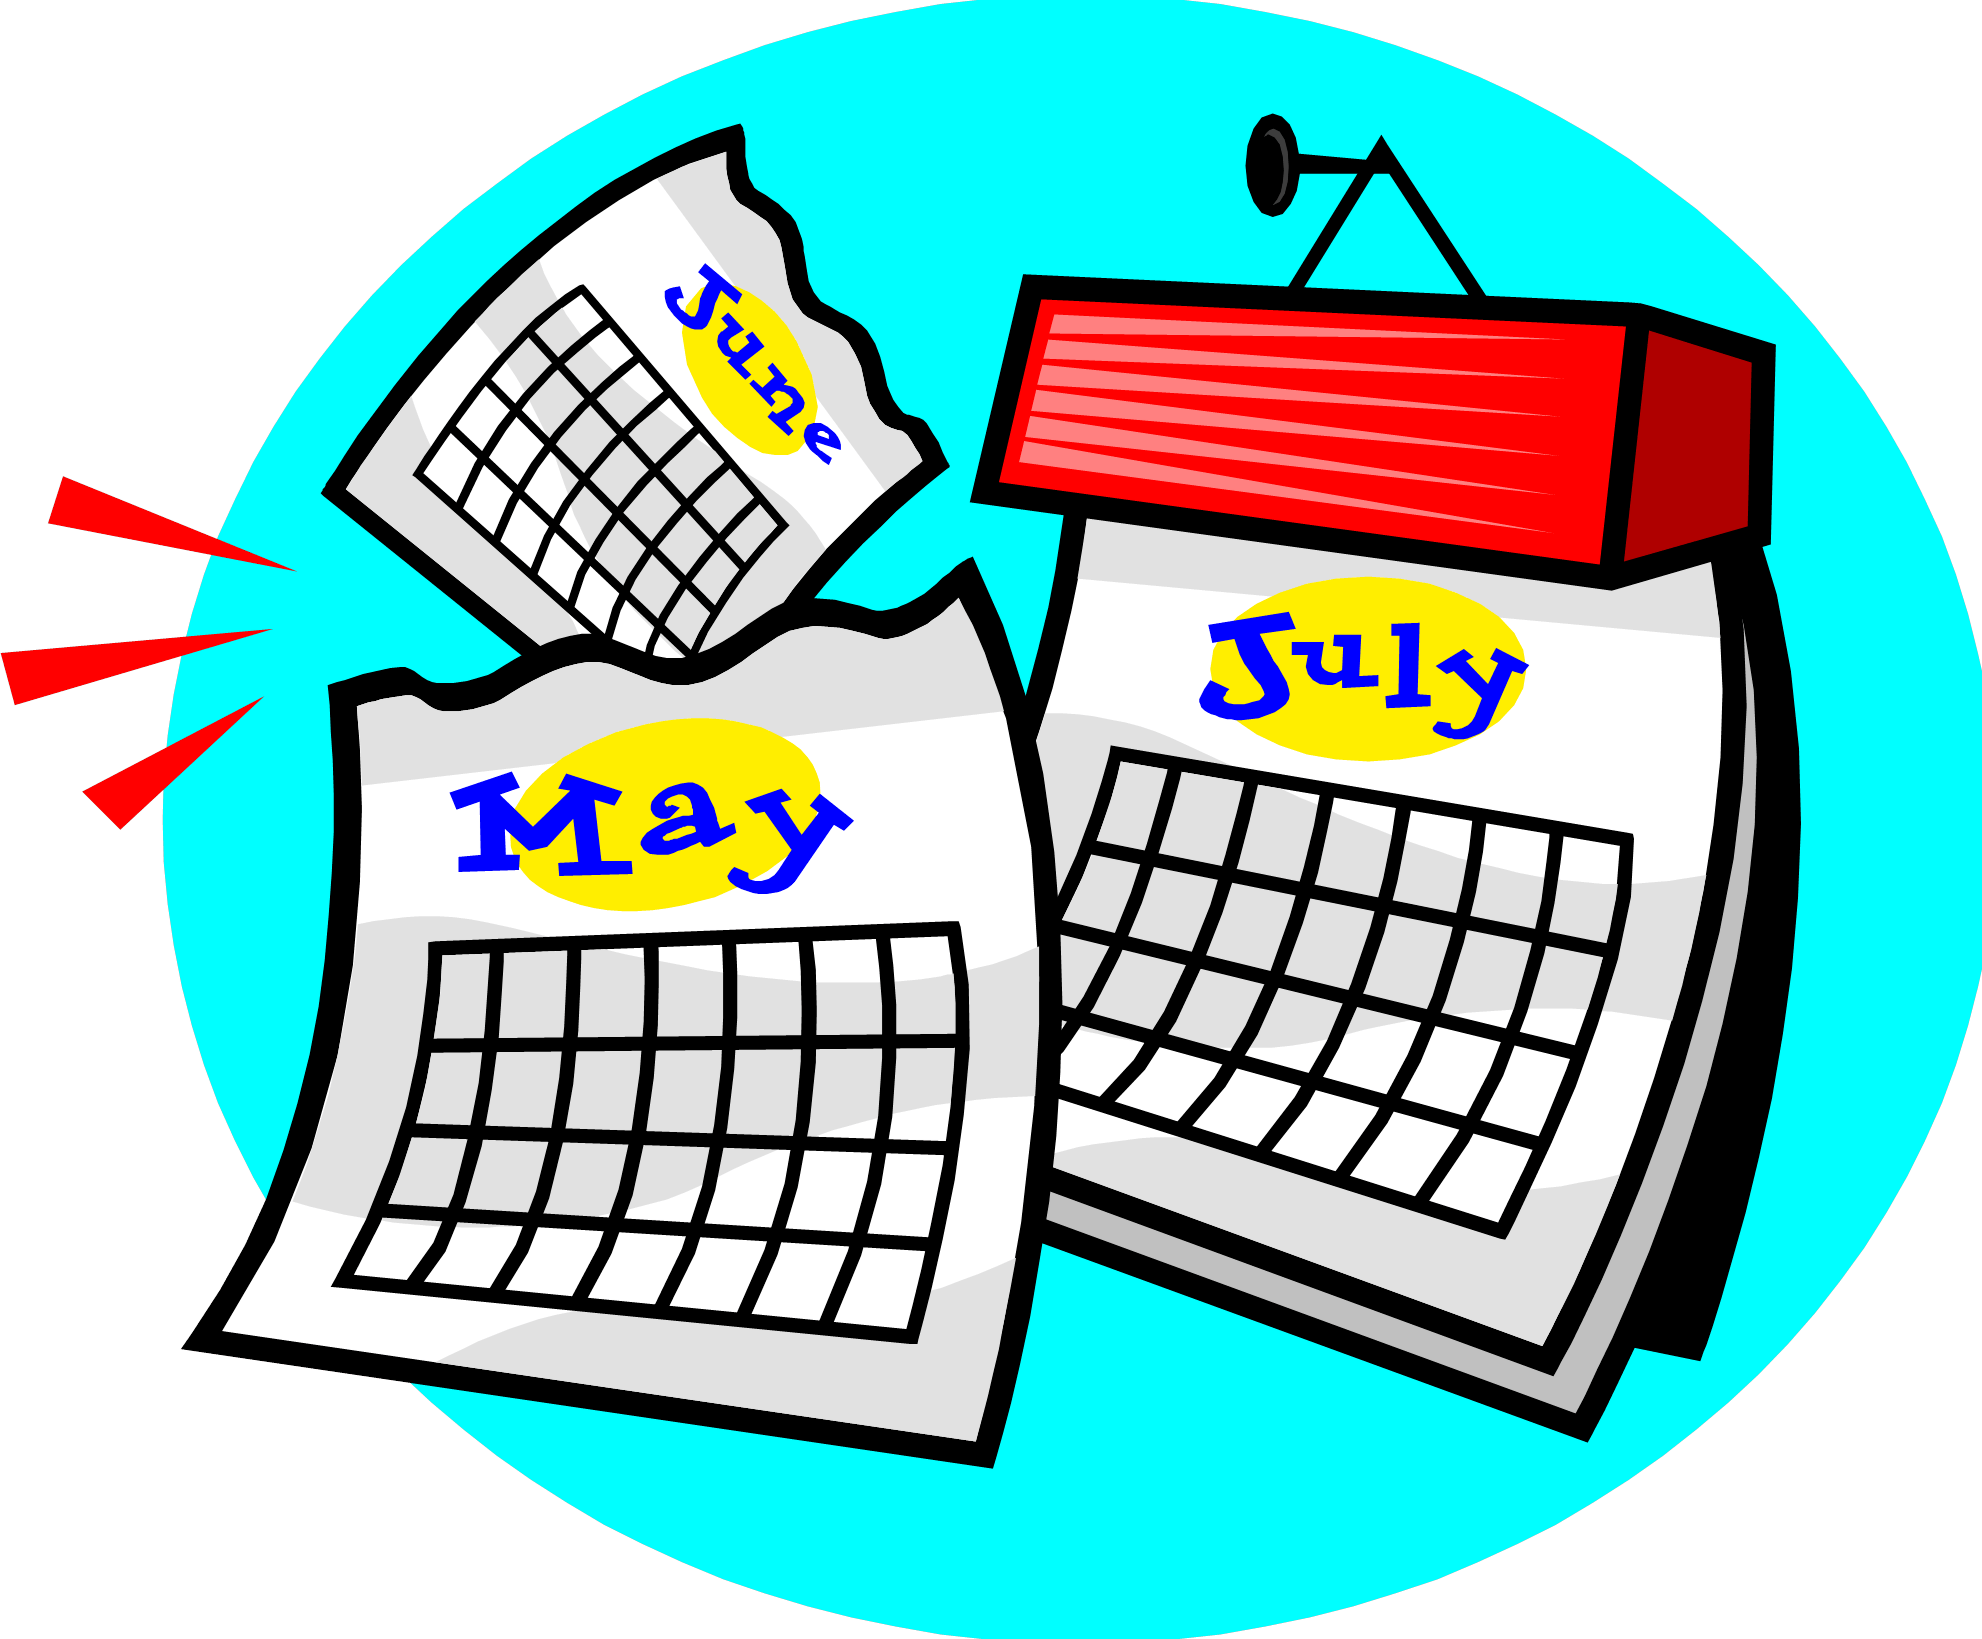 Year Calendar Clipart : Top reasons why you should write short stories